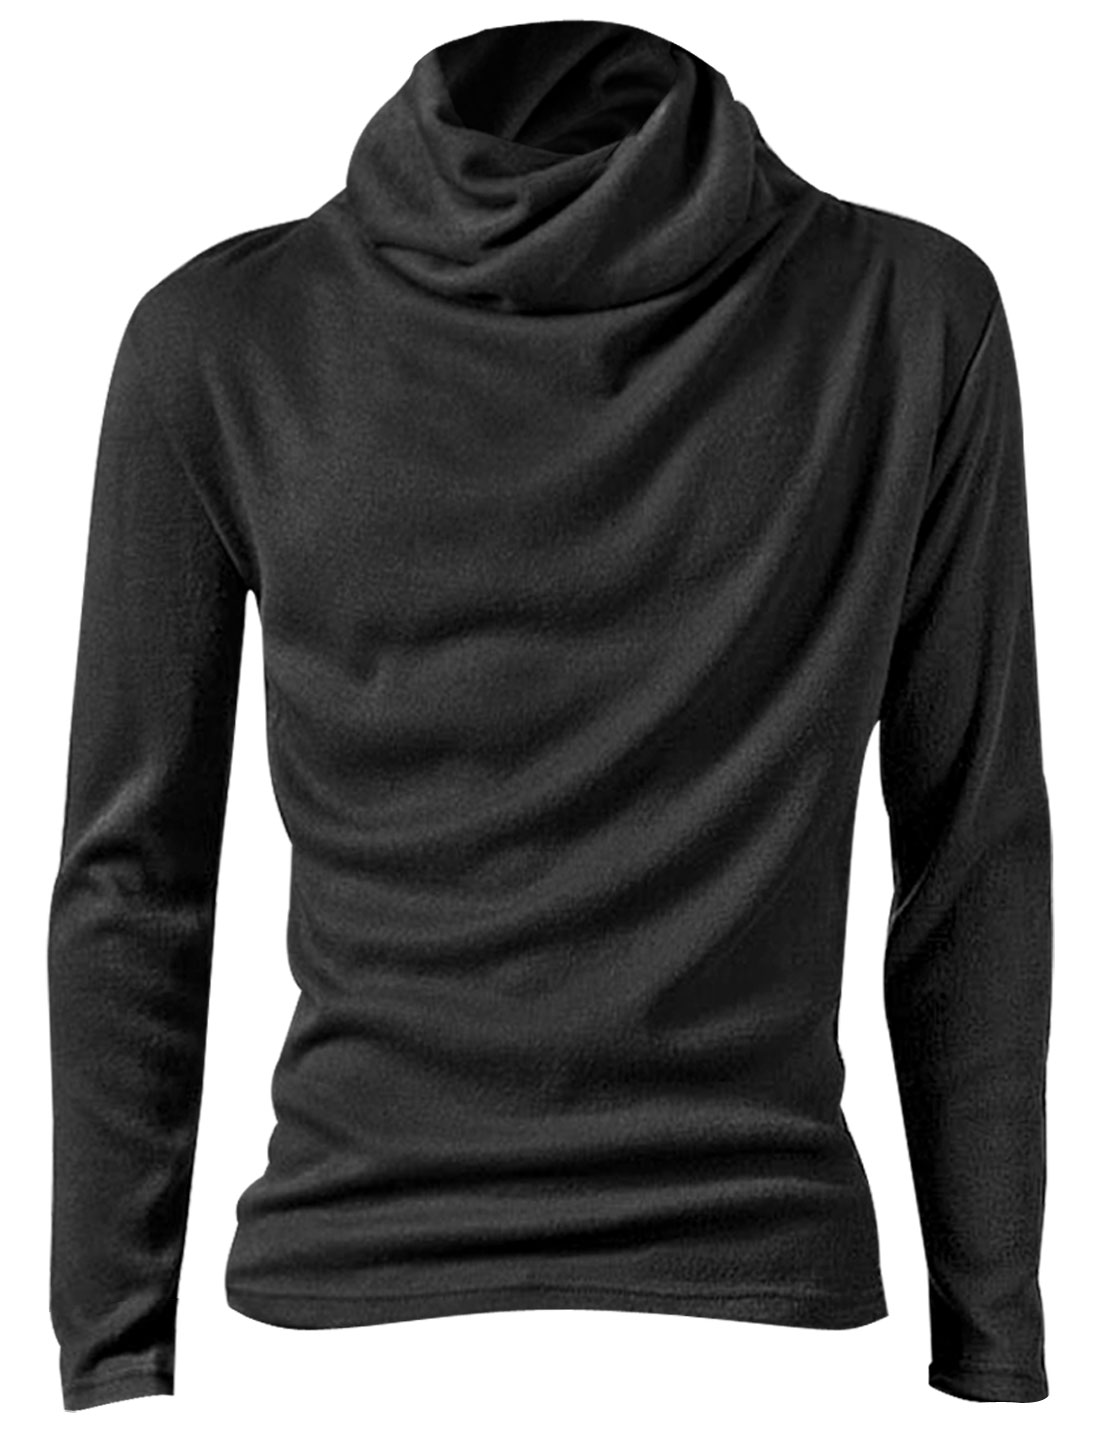 Men's NEW Dark Gray Long Sleeve Turtle Neck Stretch Slim Casual Shirt